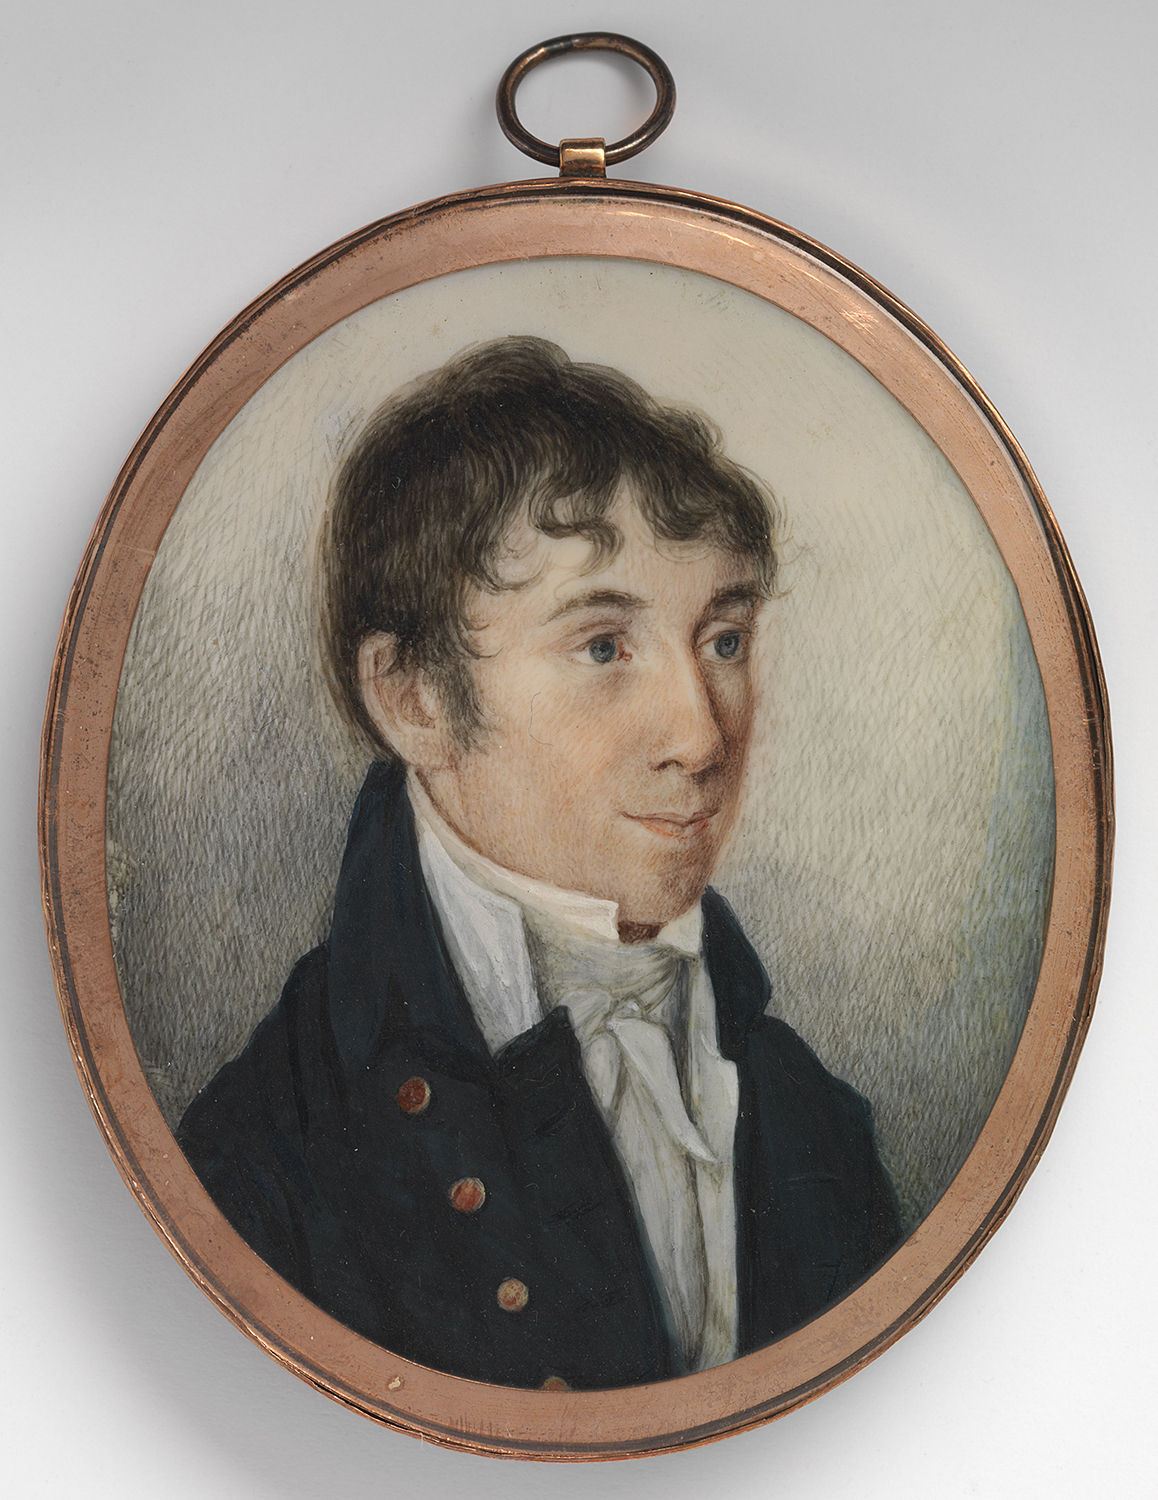 Small painted portrait of a man in a gold frame